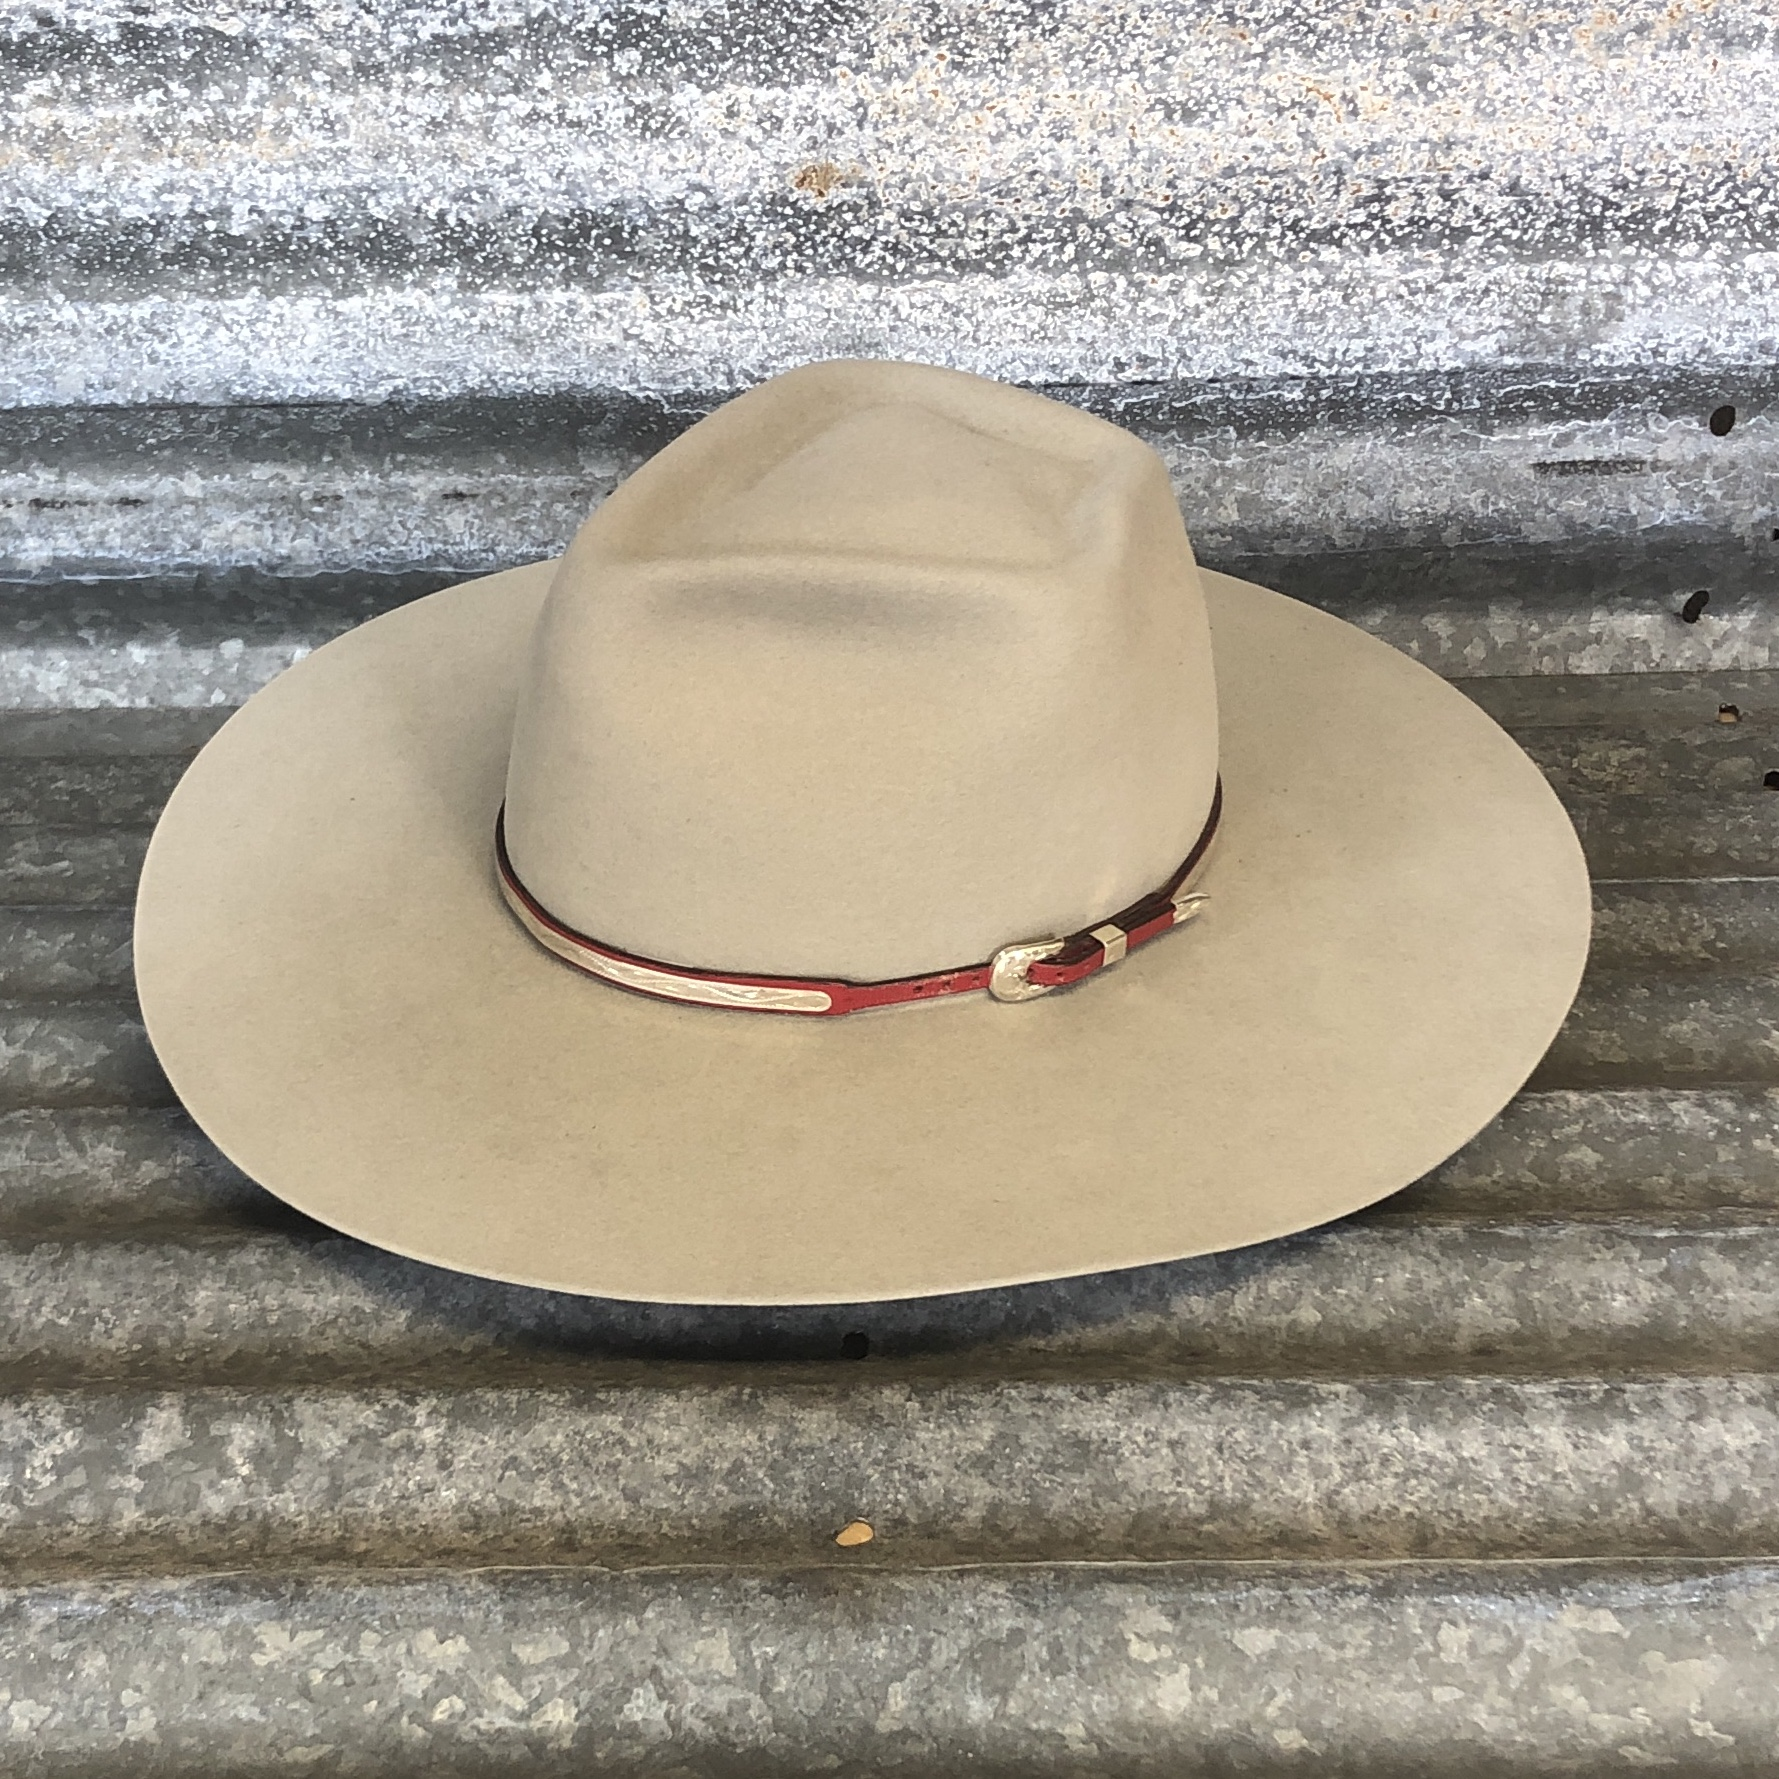 SILVER BELLY ARROW WITH RED MONTIE MONTANA